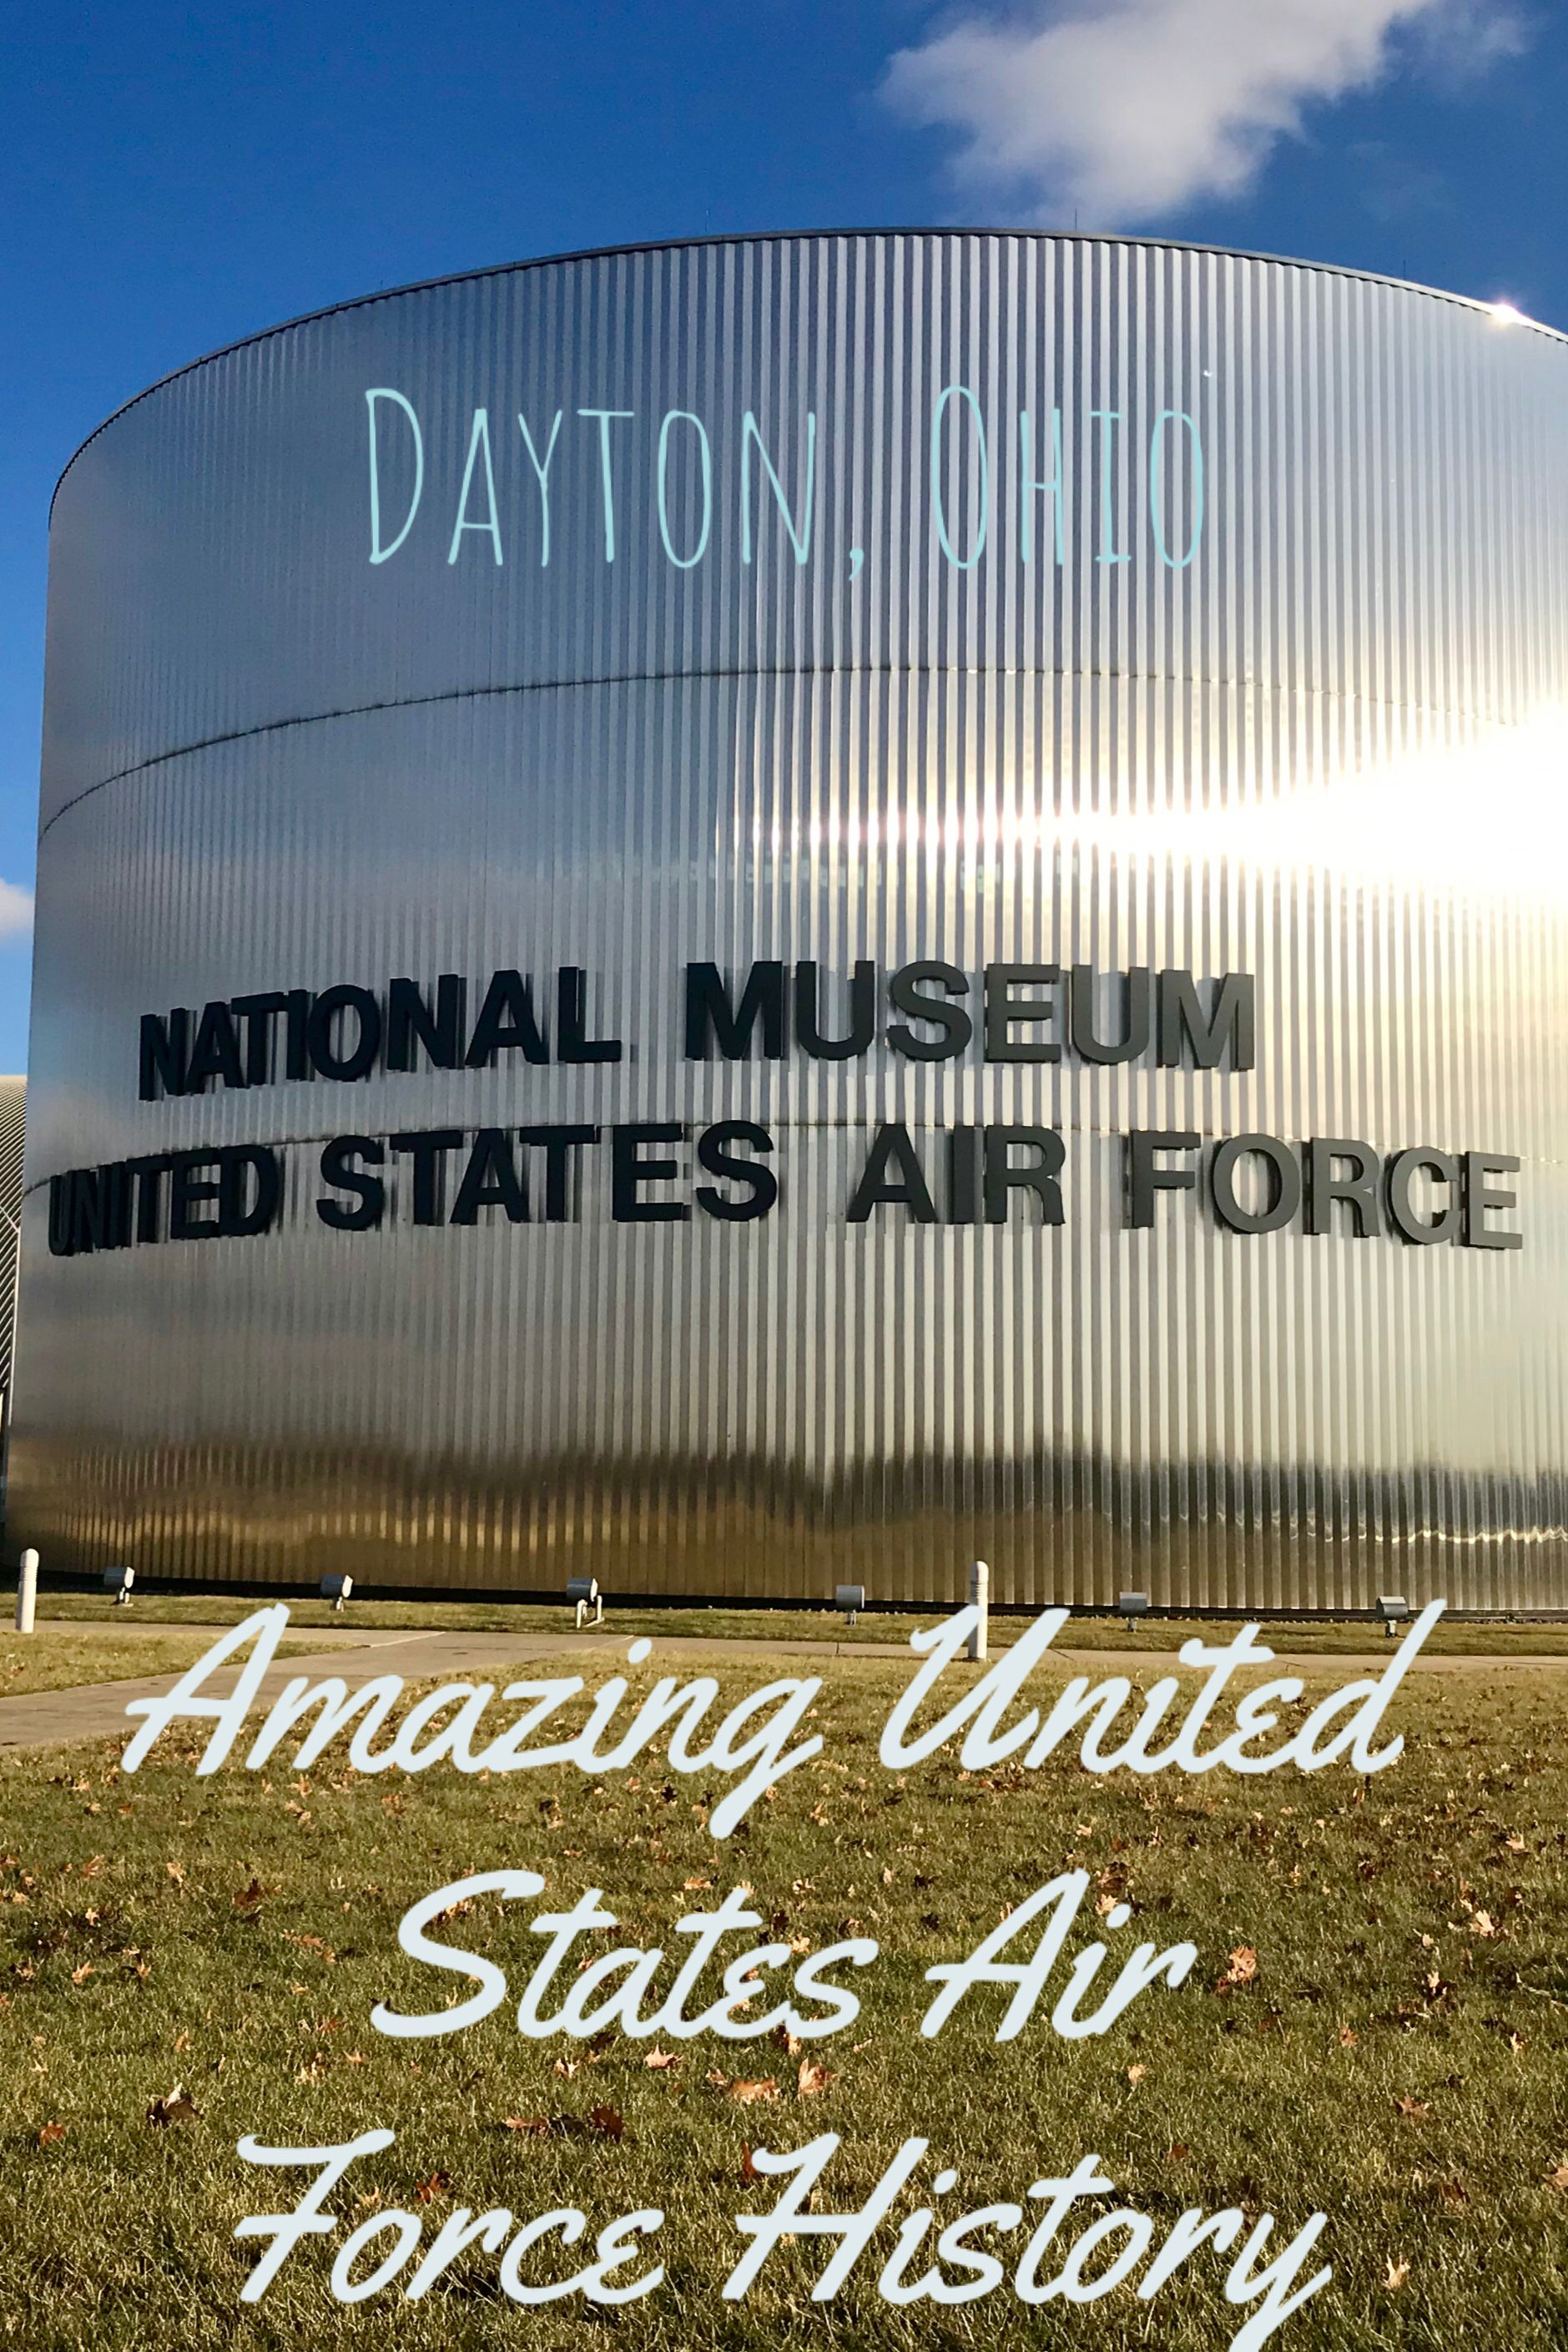 National Museum of the Air ForceDayton, Ohio National